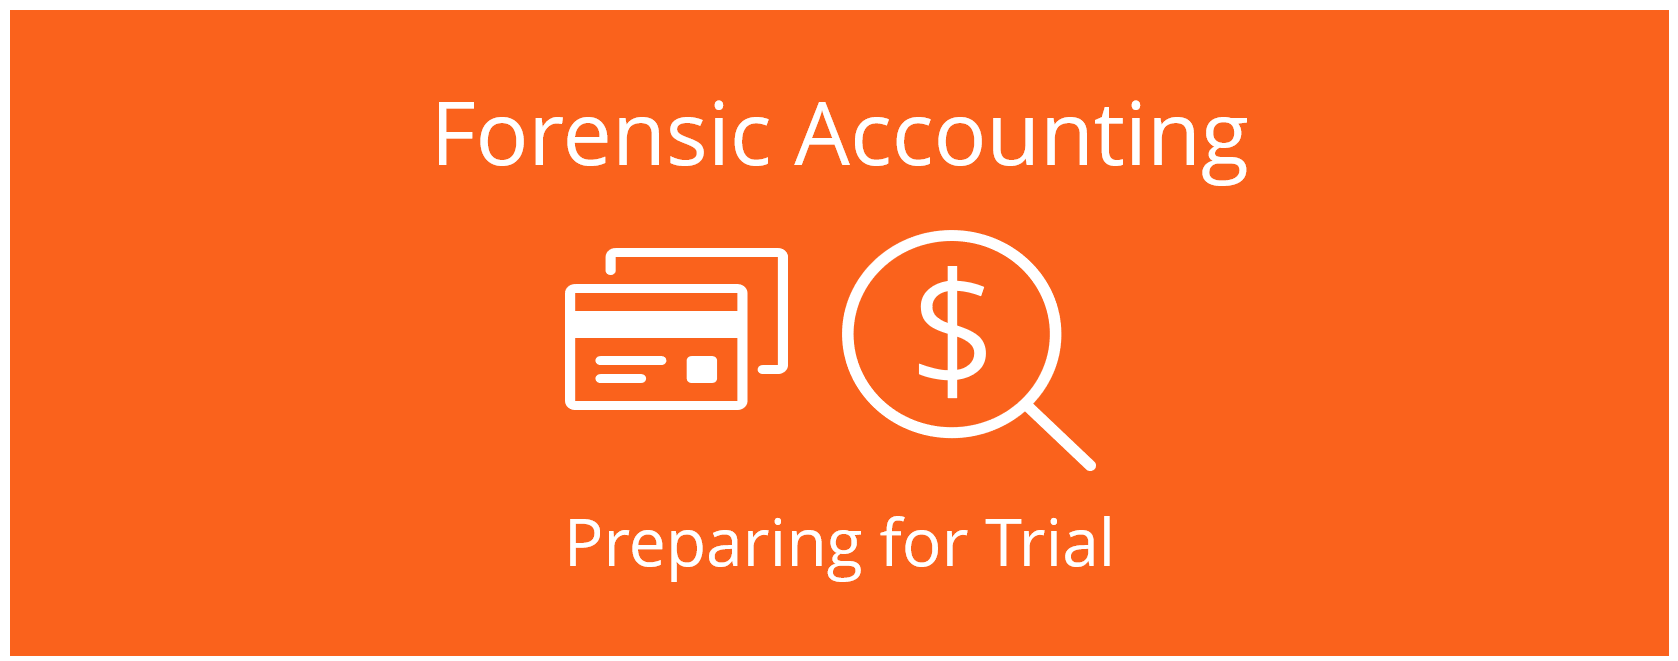 Forensic Accounting - preparing for litigation